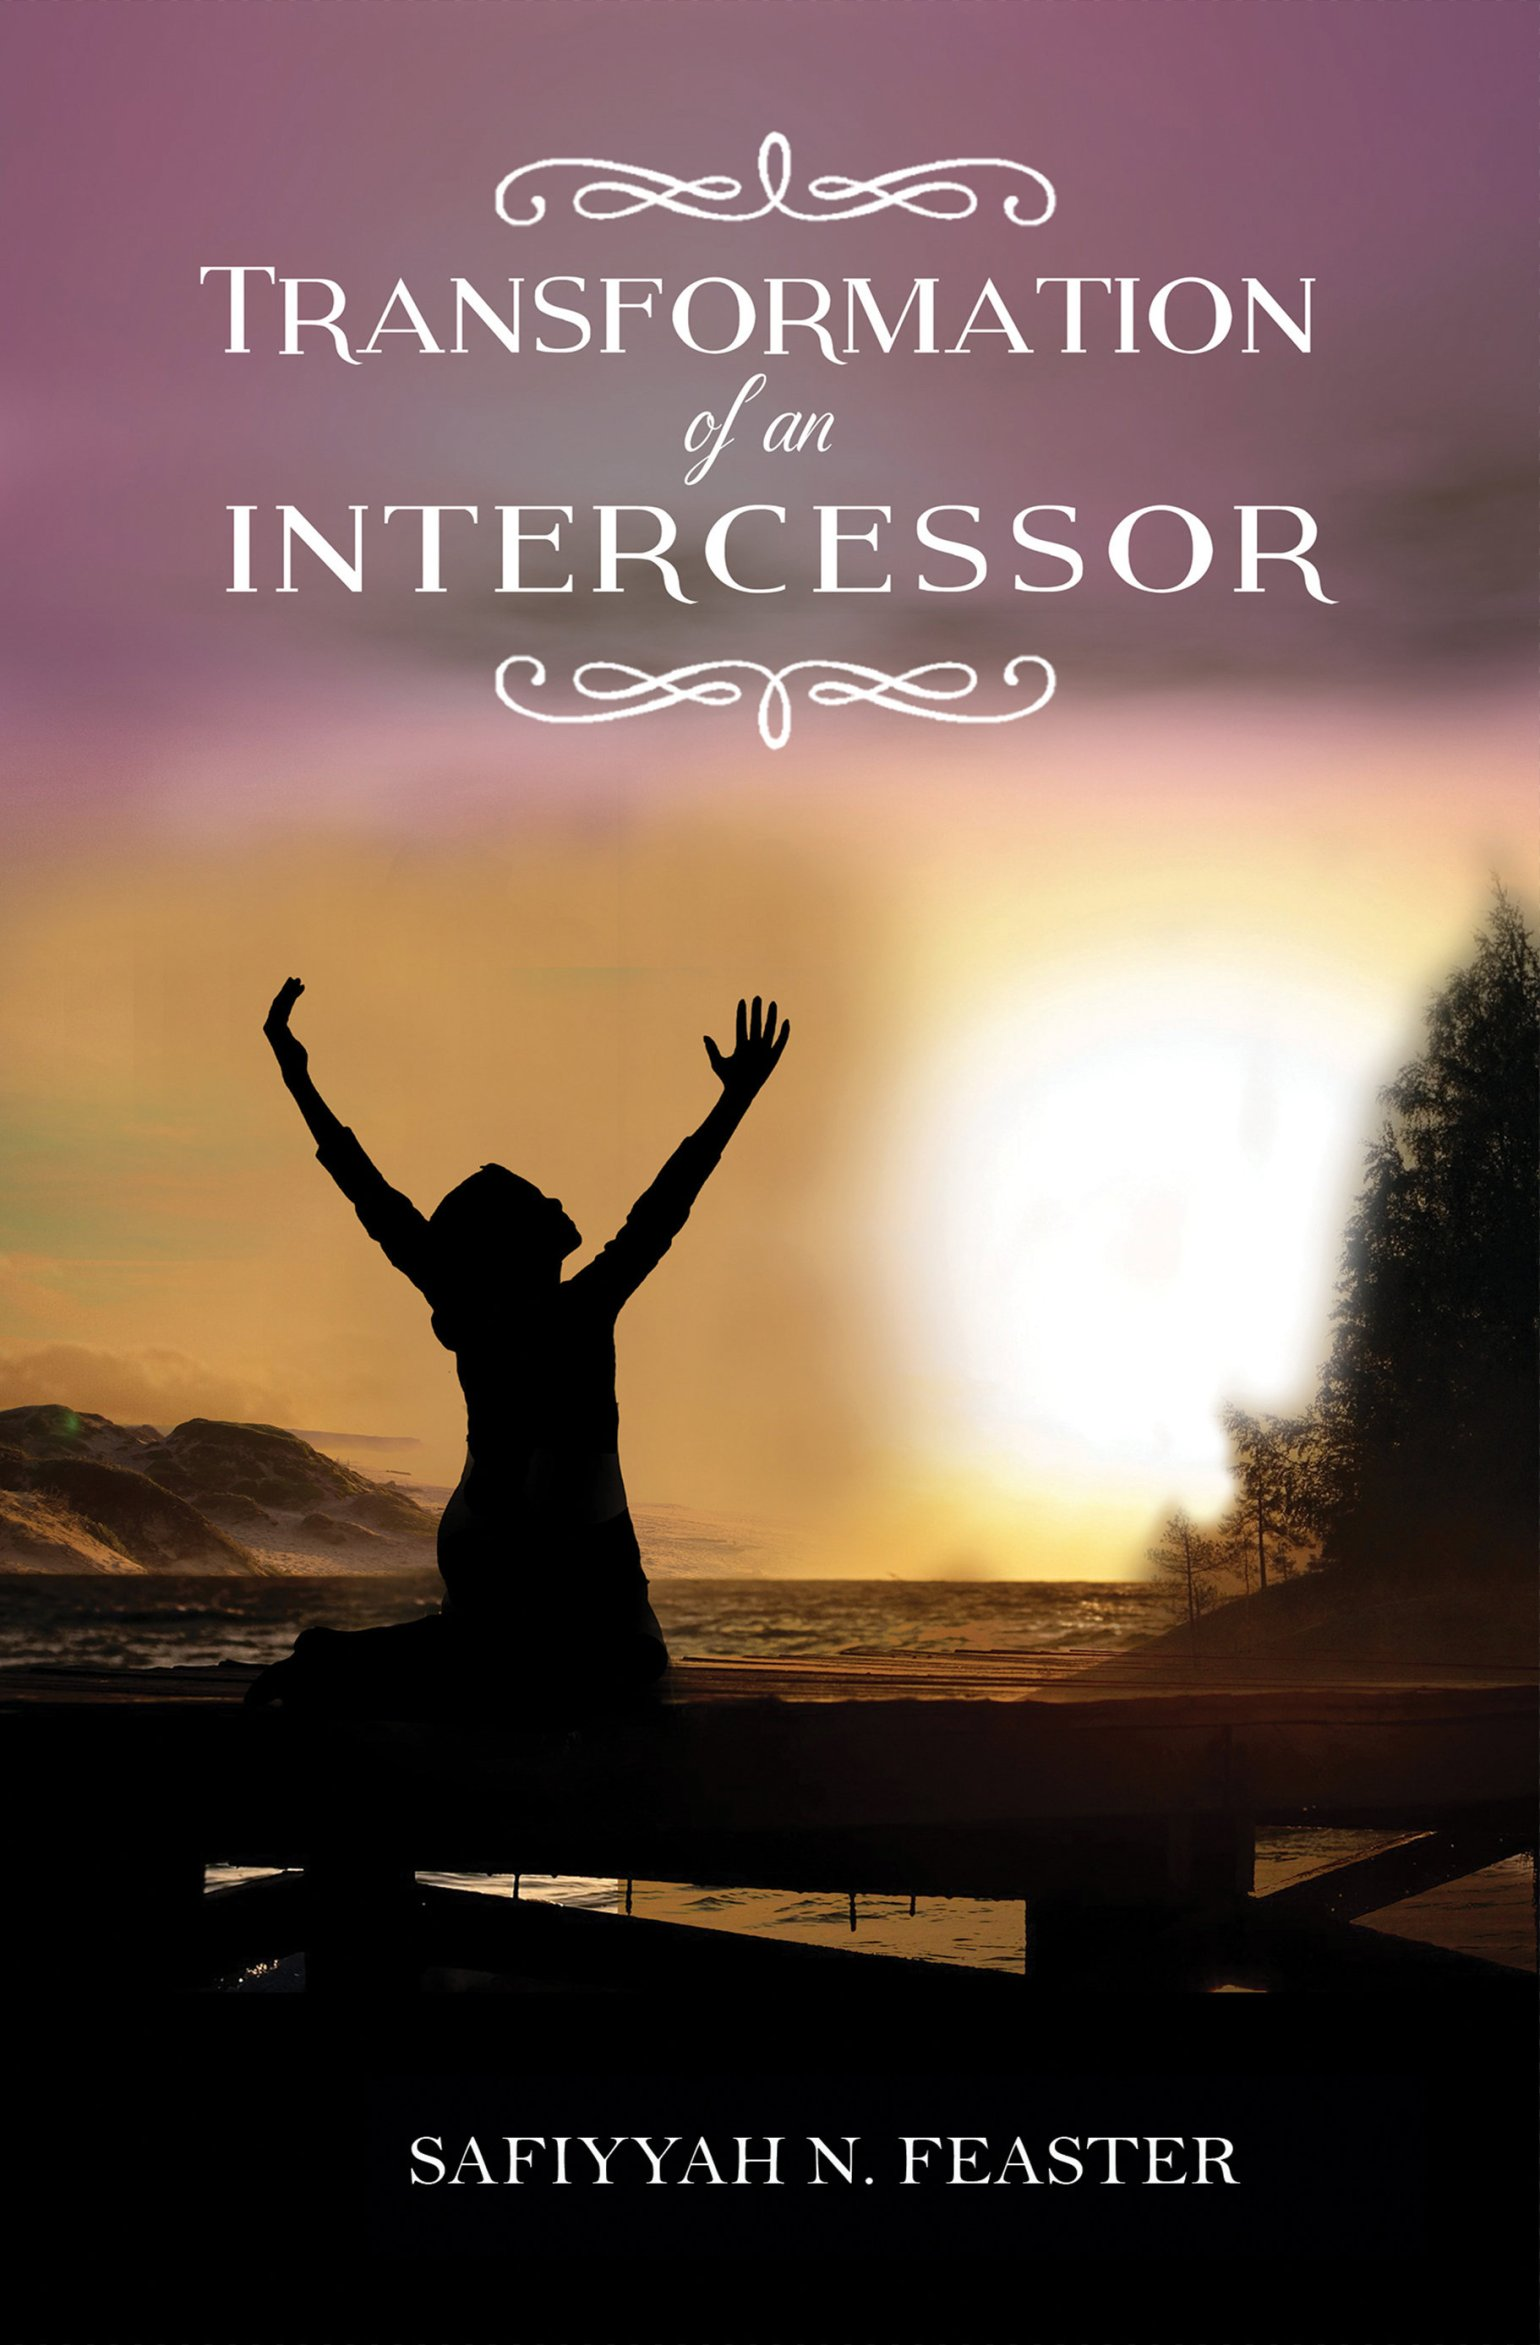 Transformation of an Intercessor by Safiyyah N Feaster 978-1682737606